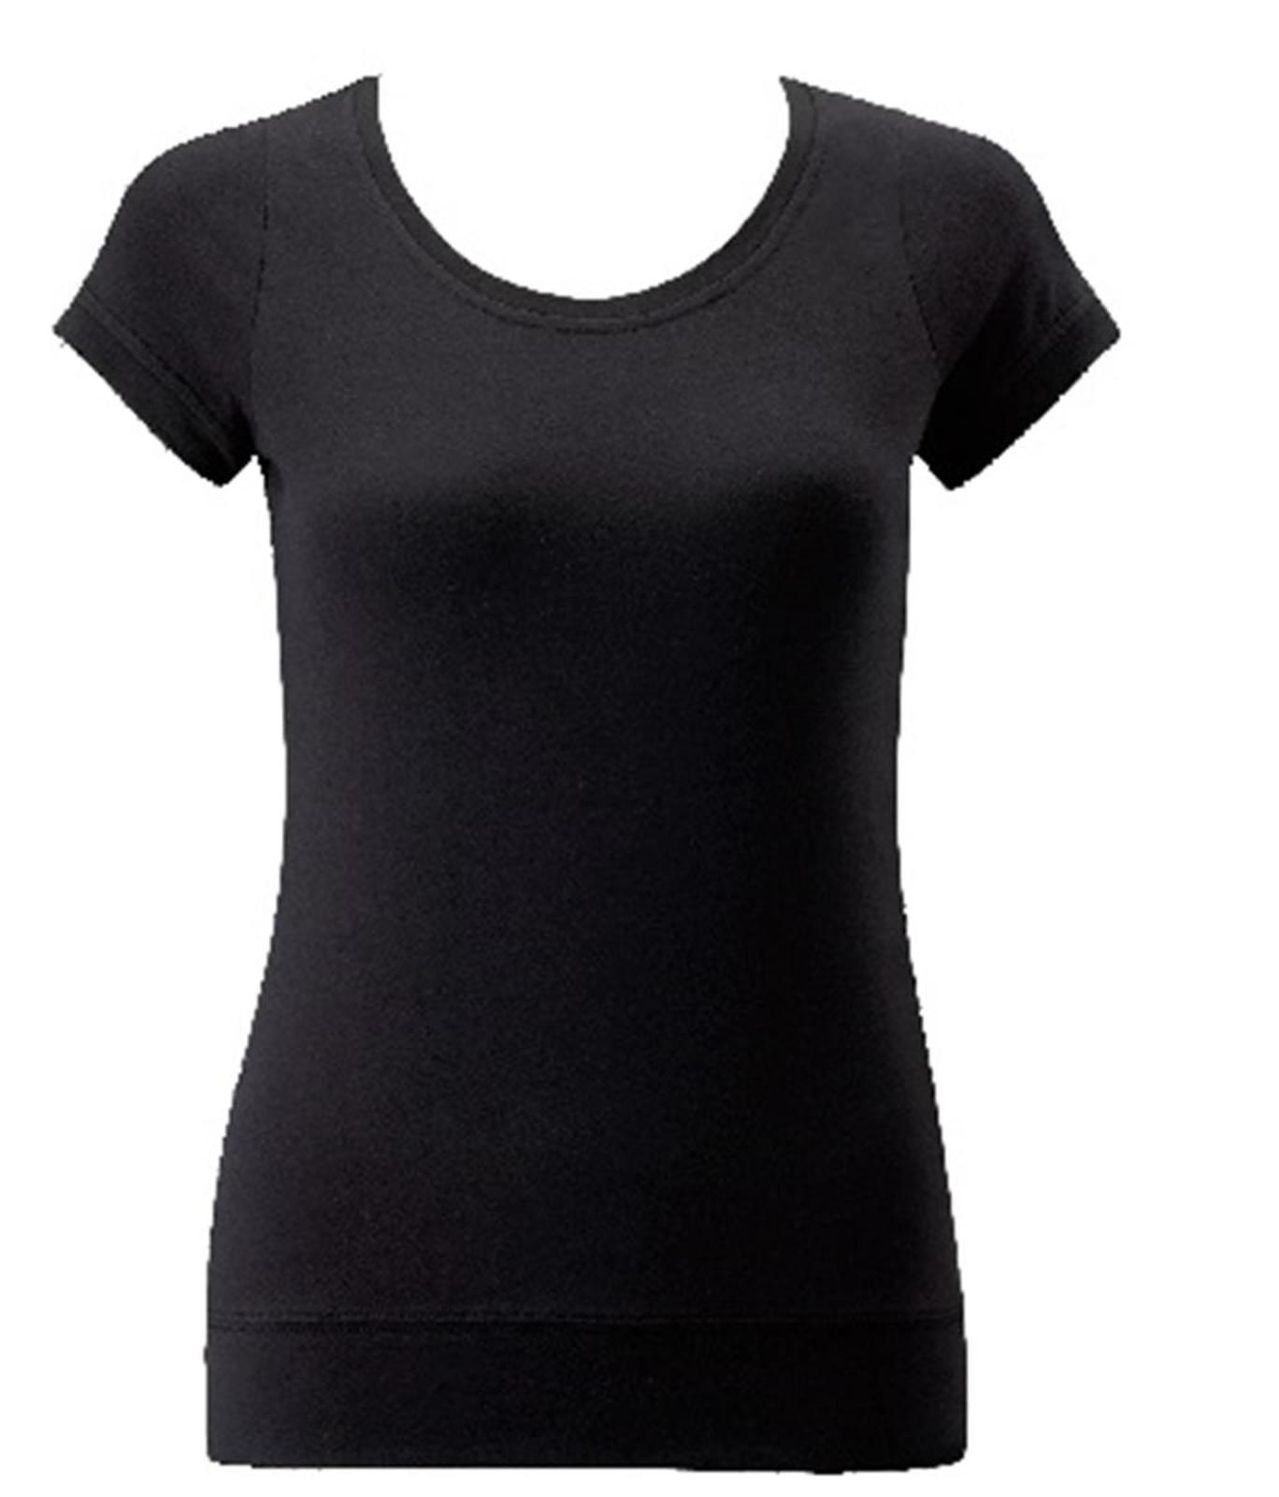 Russell-Collection-Short-Sleeve-Stretch-Top-Ladies-Scoop-Neck-Shirts-Tops-UK